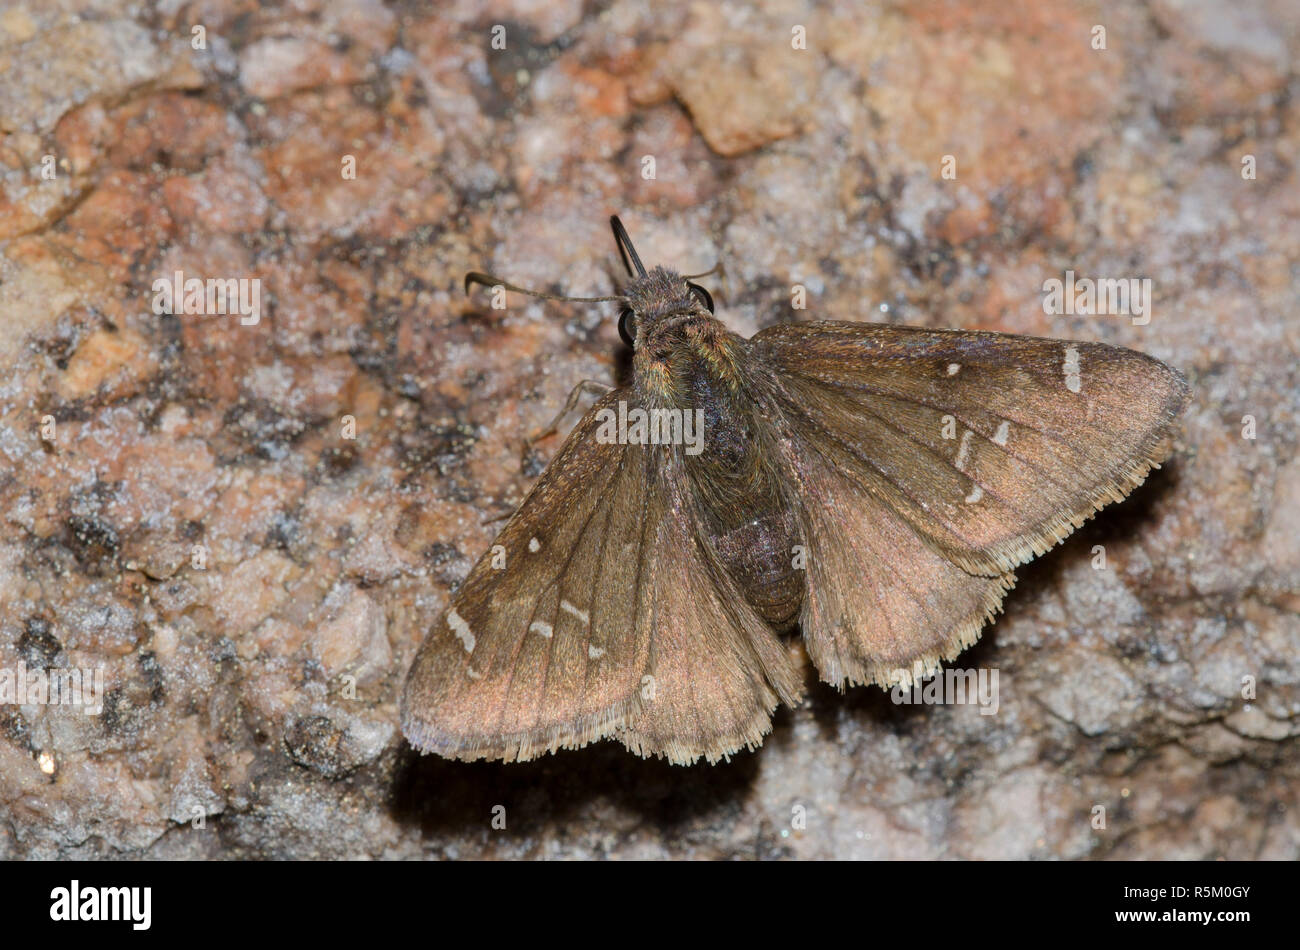 Thorybes Cloudywing mexicana, mexicana, hembra Foto de stock